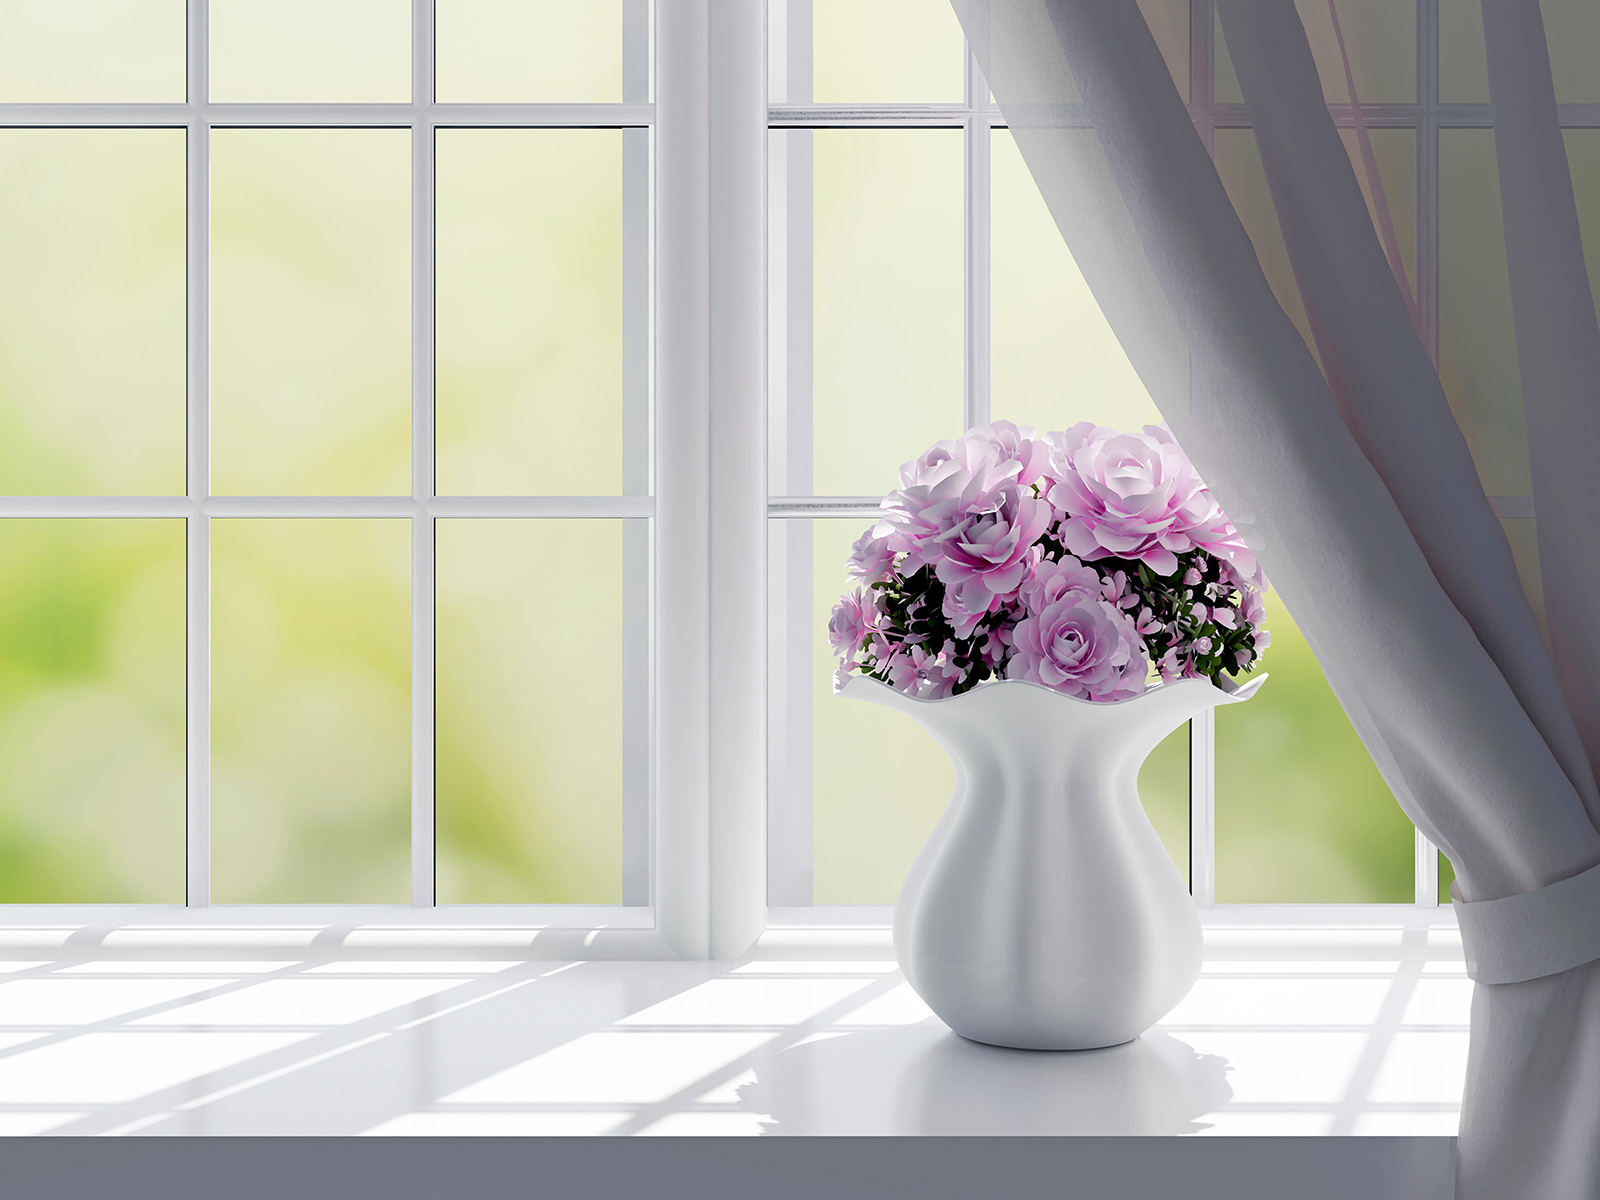 Stuck in a vase of pink flowers 50948